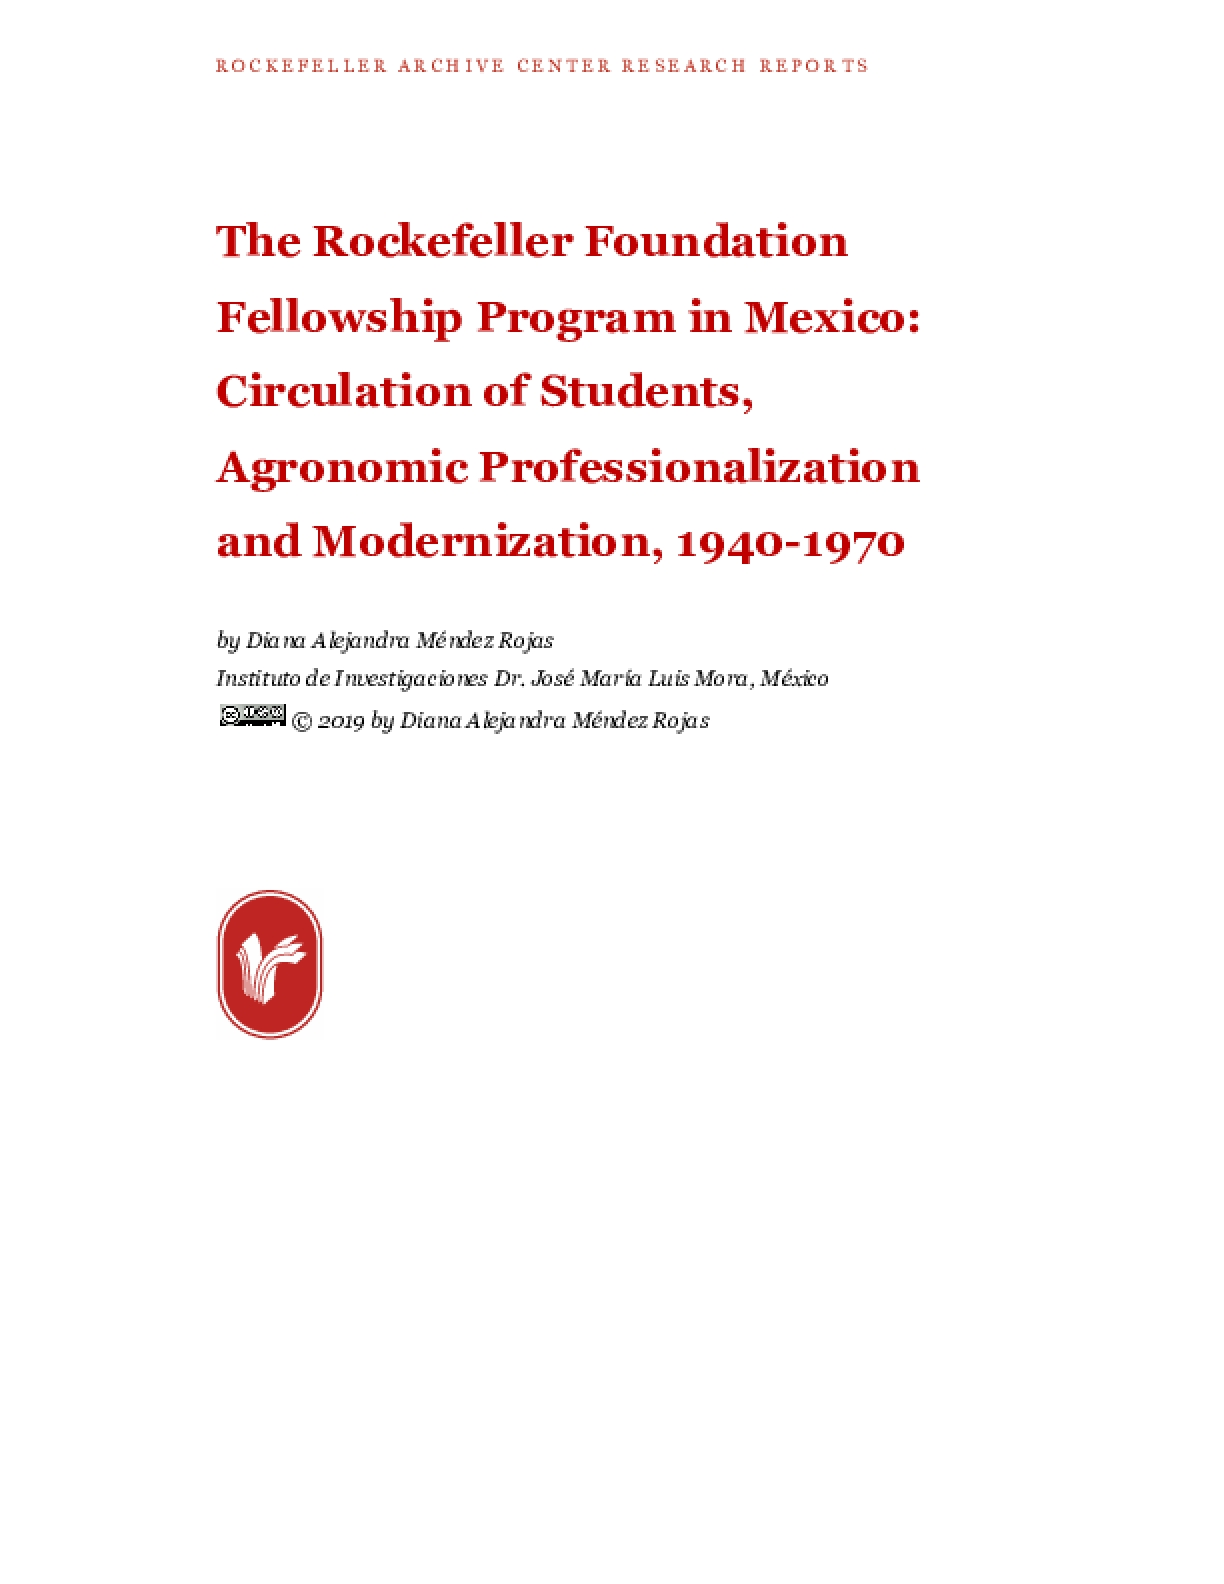 The Rockefeller Foundation Fellowship Program in Mexico: Circulation of Students, Agronomic Professionalization and Modernization, 1940-1970